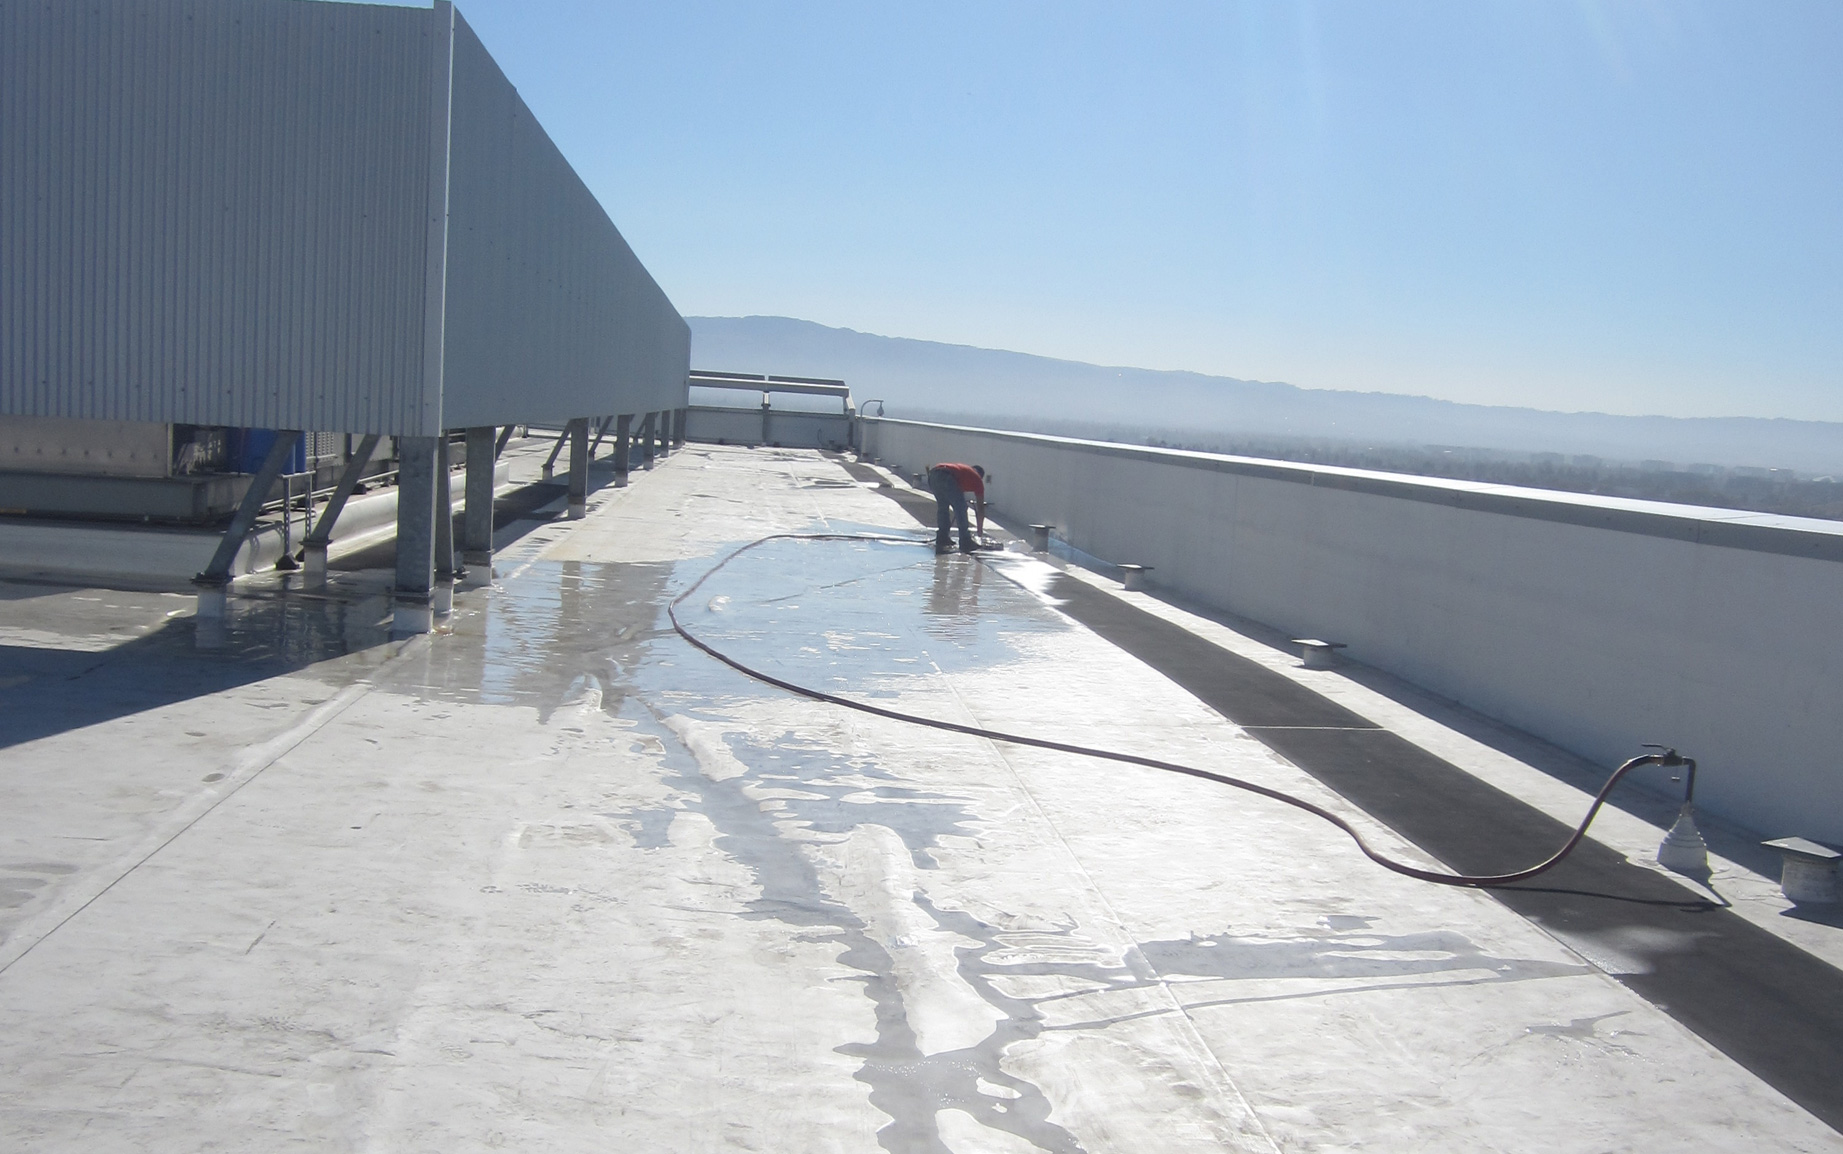 Commercial Roofing Services San Francisco Oakland Ca